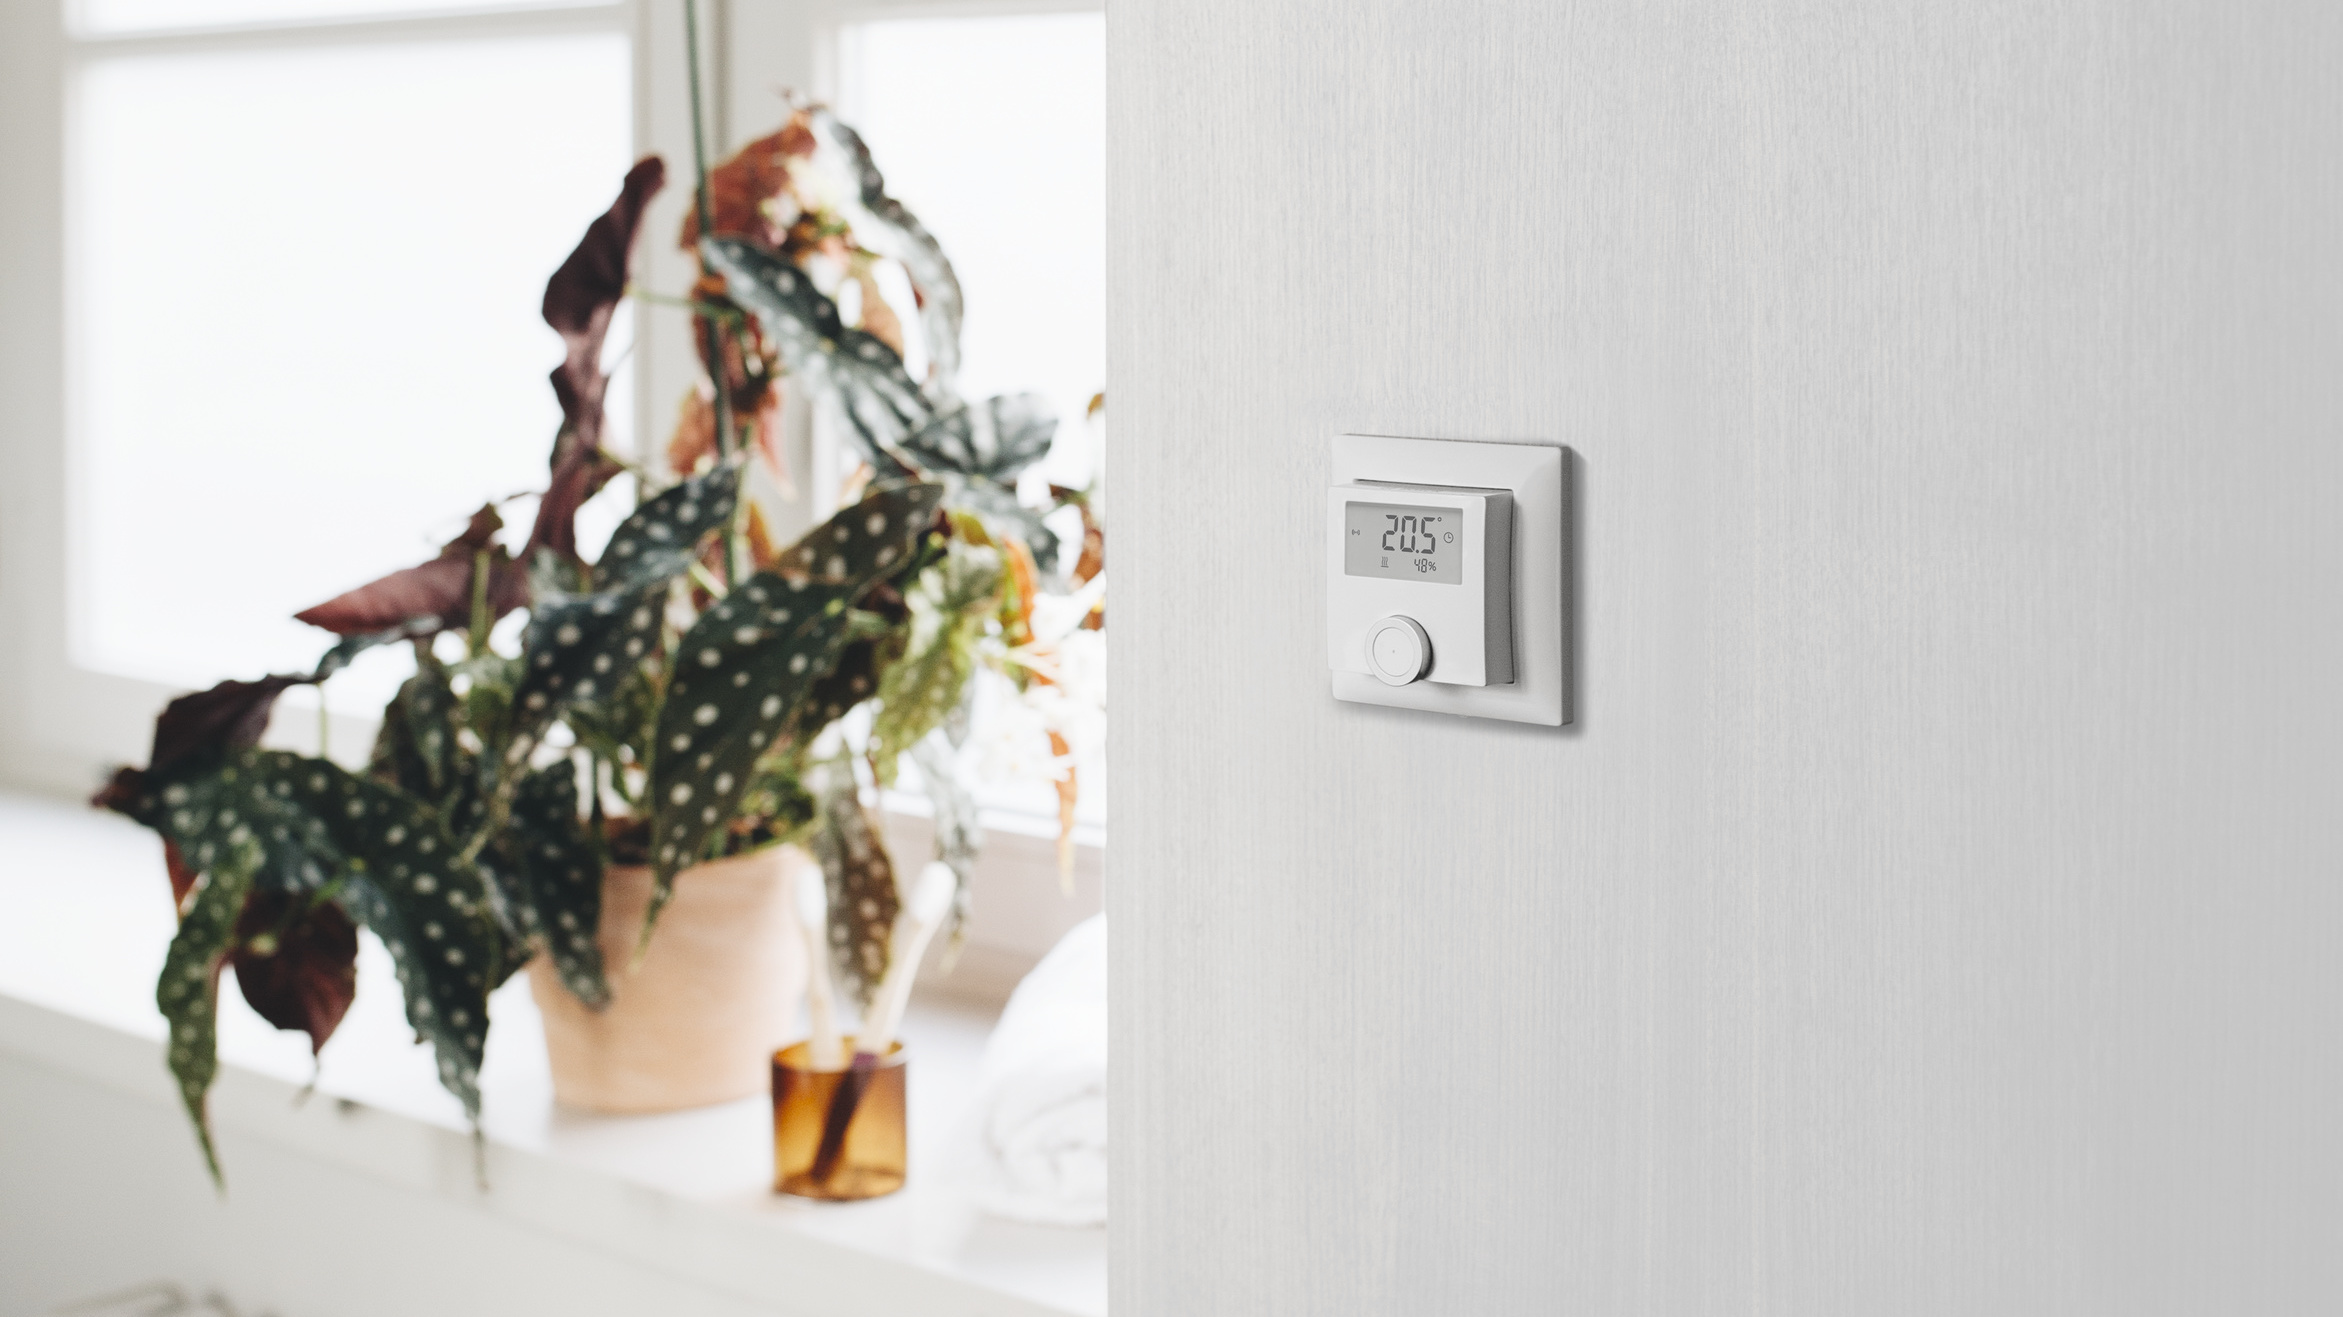 Bosch Smart Home room thermostat